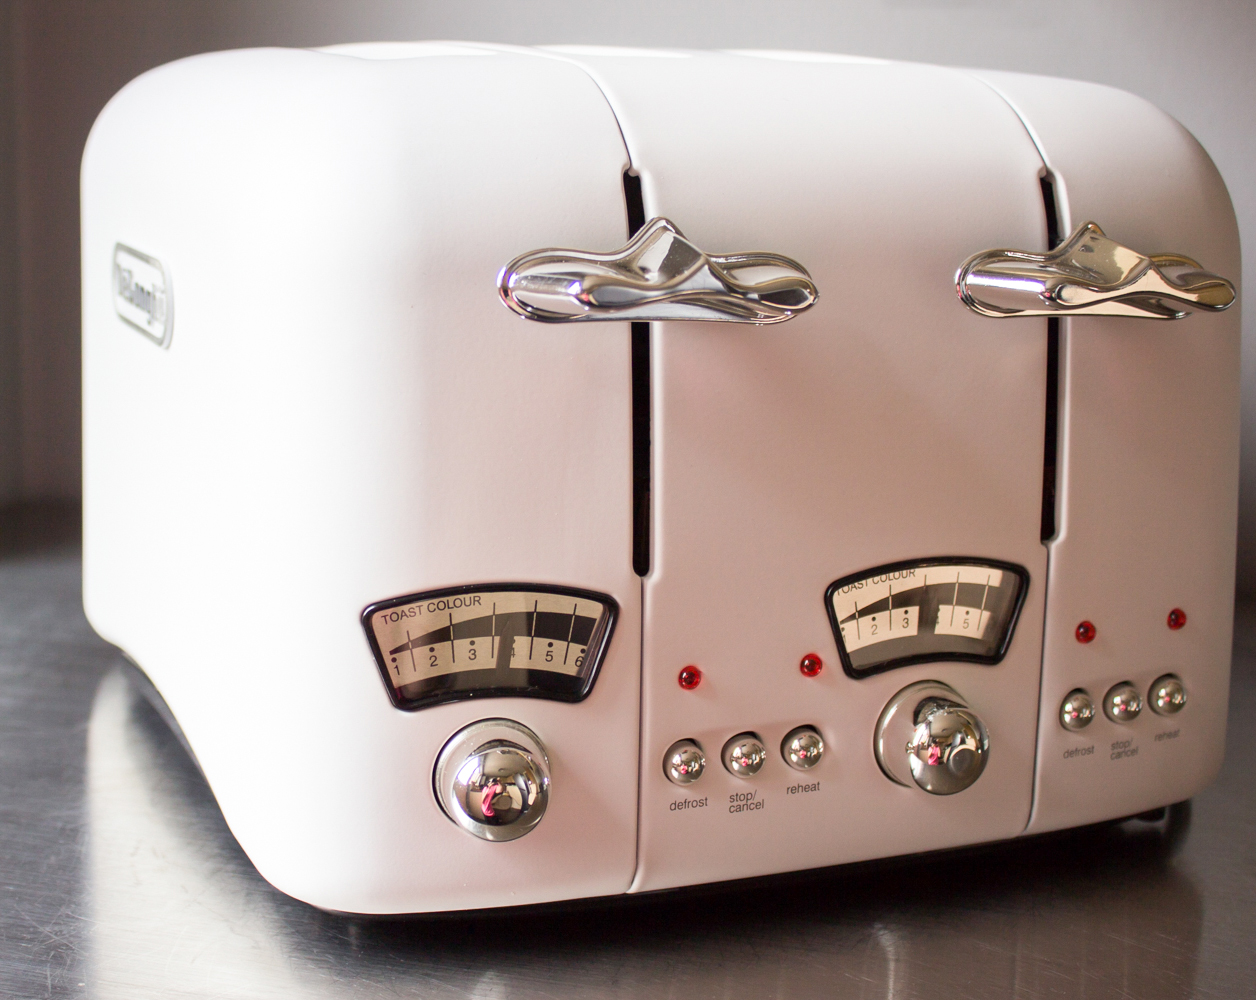 Delonghi Toaster 4 Scheiben Delonghi Argento White 4 Slot Toaster Review A Glug Of Oil